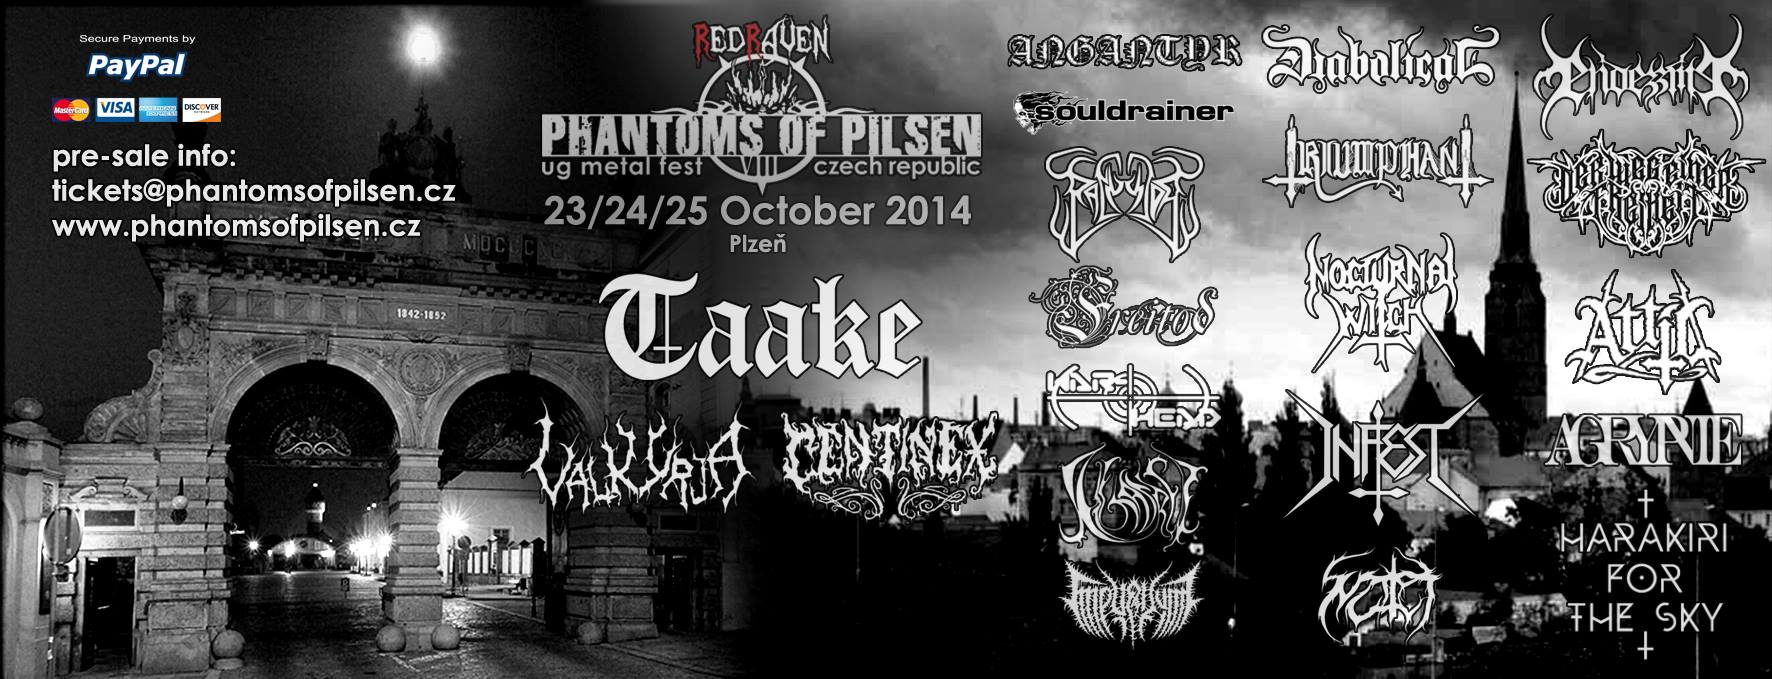 Phantoms of pilzen